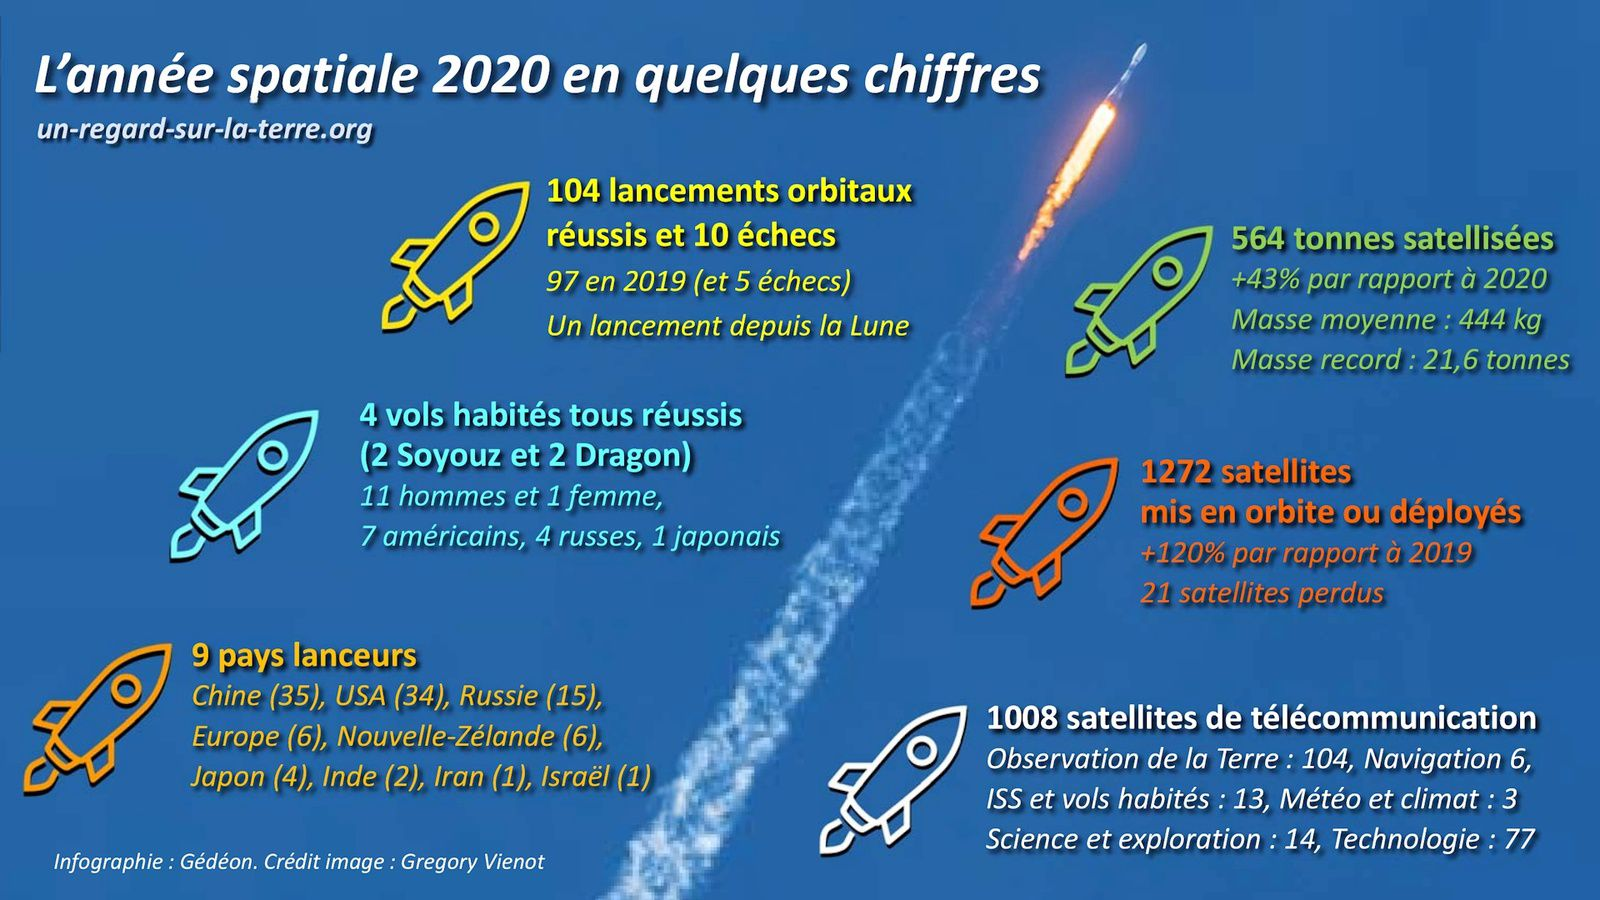 Année spatiale 2020 - Lancements orbitaux - chiffres-clés - key facts and figures - Space year in review - Orbital launch report - Space - Arianespace - SpaceX - ULA Rocket Lab - Northrop Grumman - bilan des lancements - lanceur - launcher - rocket - 2020 in space by the numbers